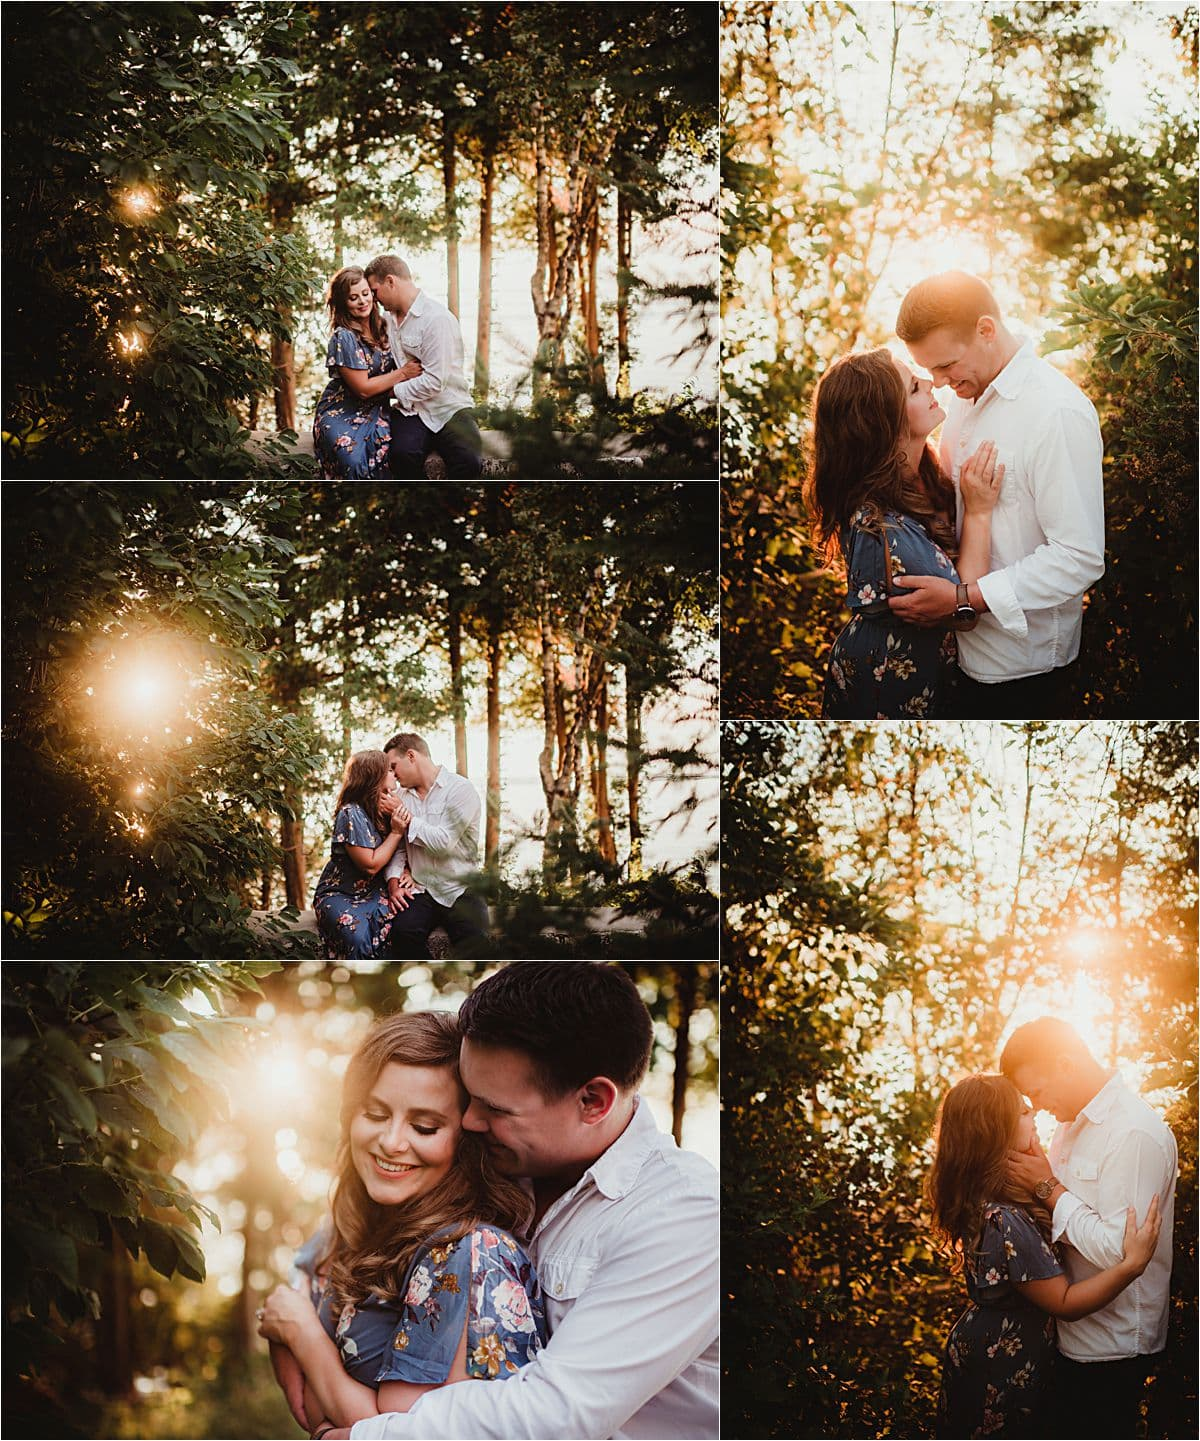 Sunset Lakefront Engagement Session Couple in Woods